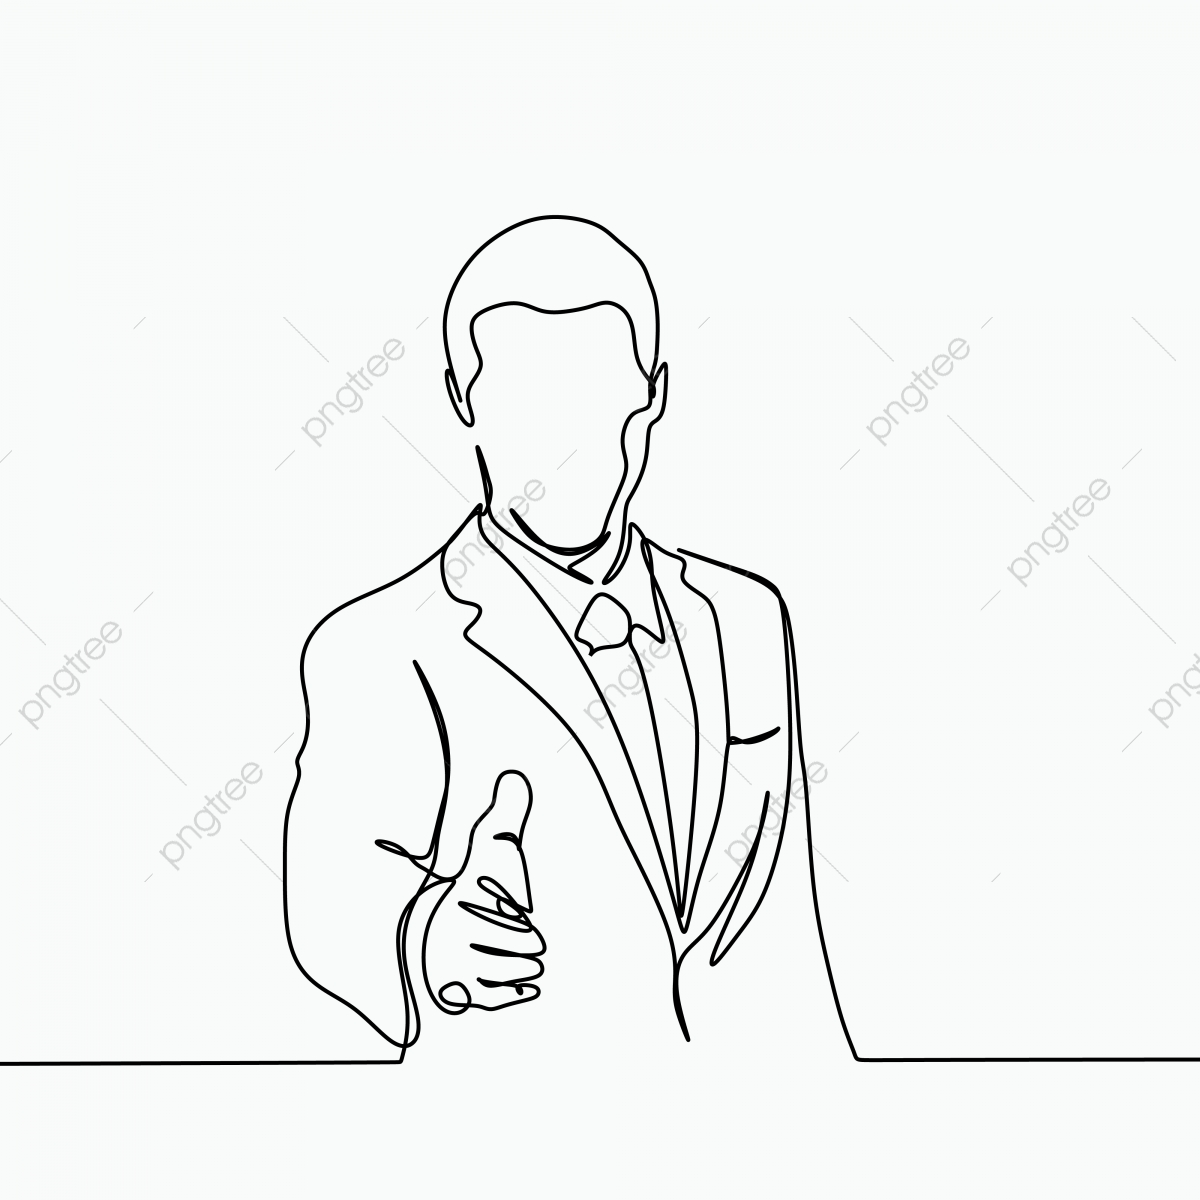 Commercial use resource upgrade to premium plan and get license authorization upgradenow · one line drawing of a man